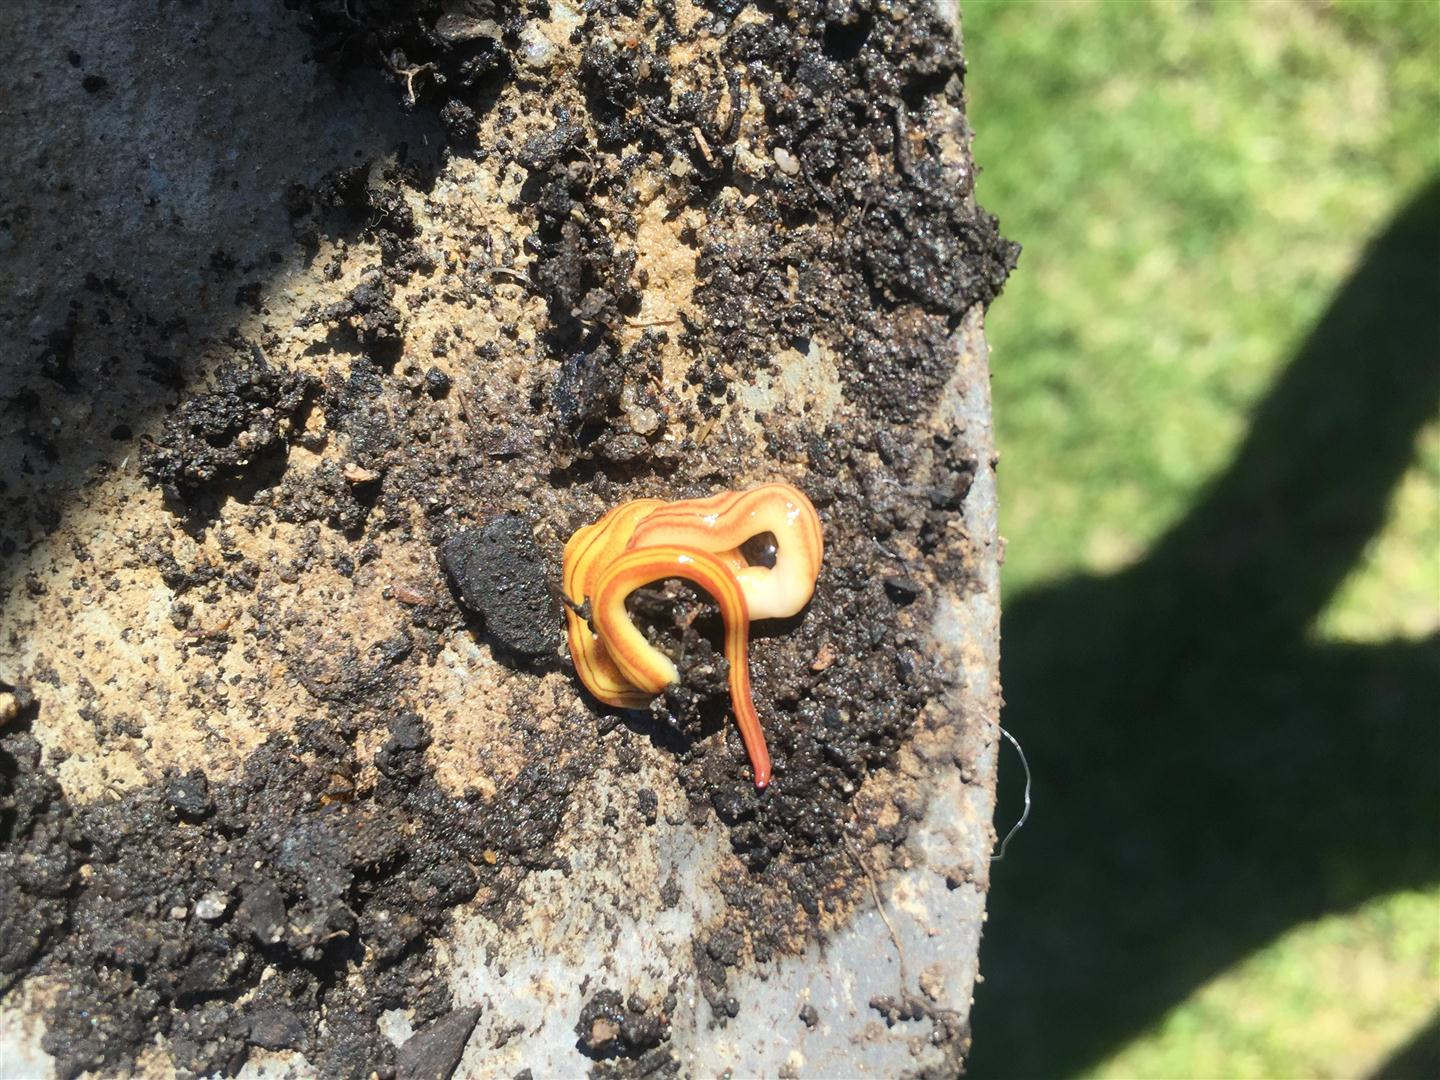 Unknown Worms or Parasites Garden Beds